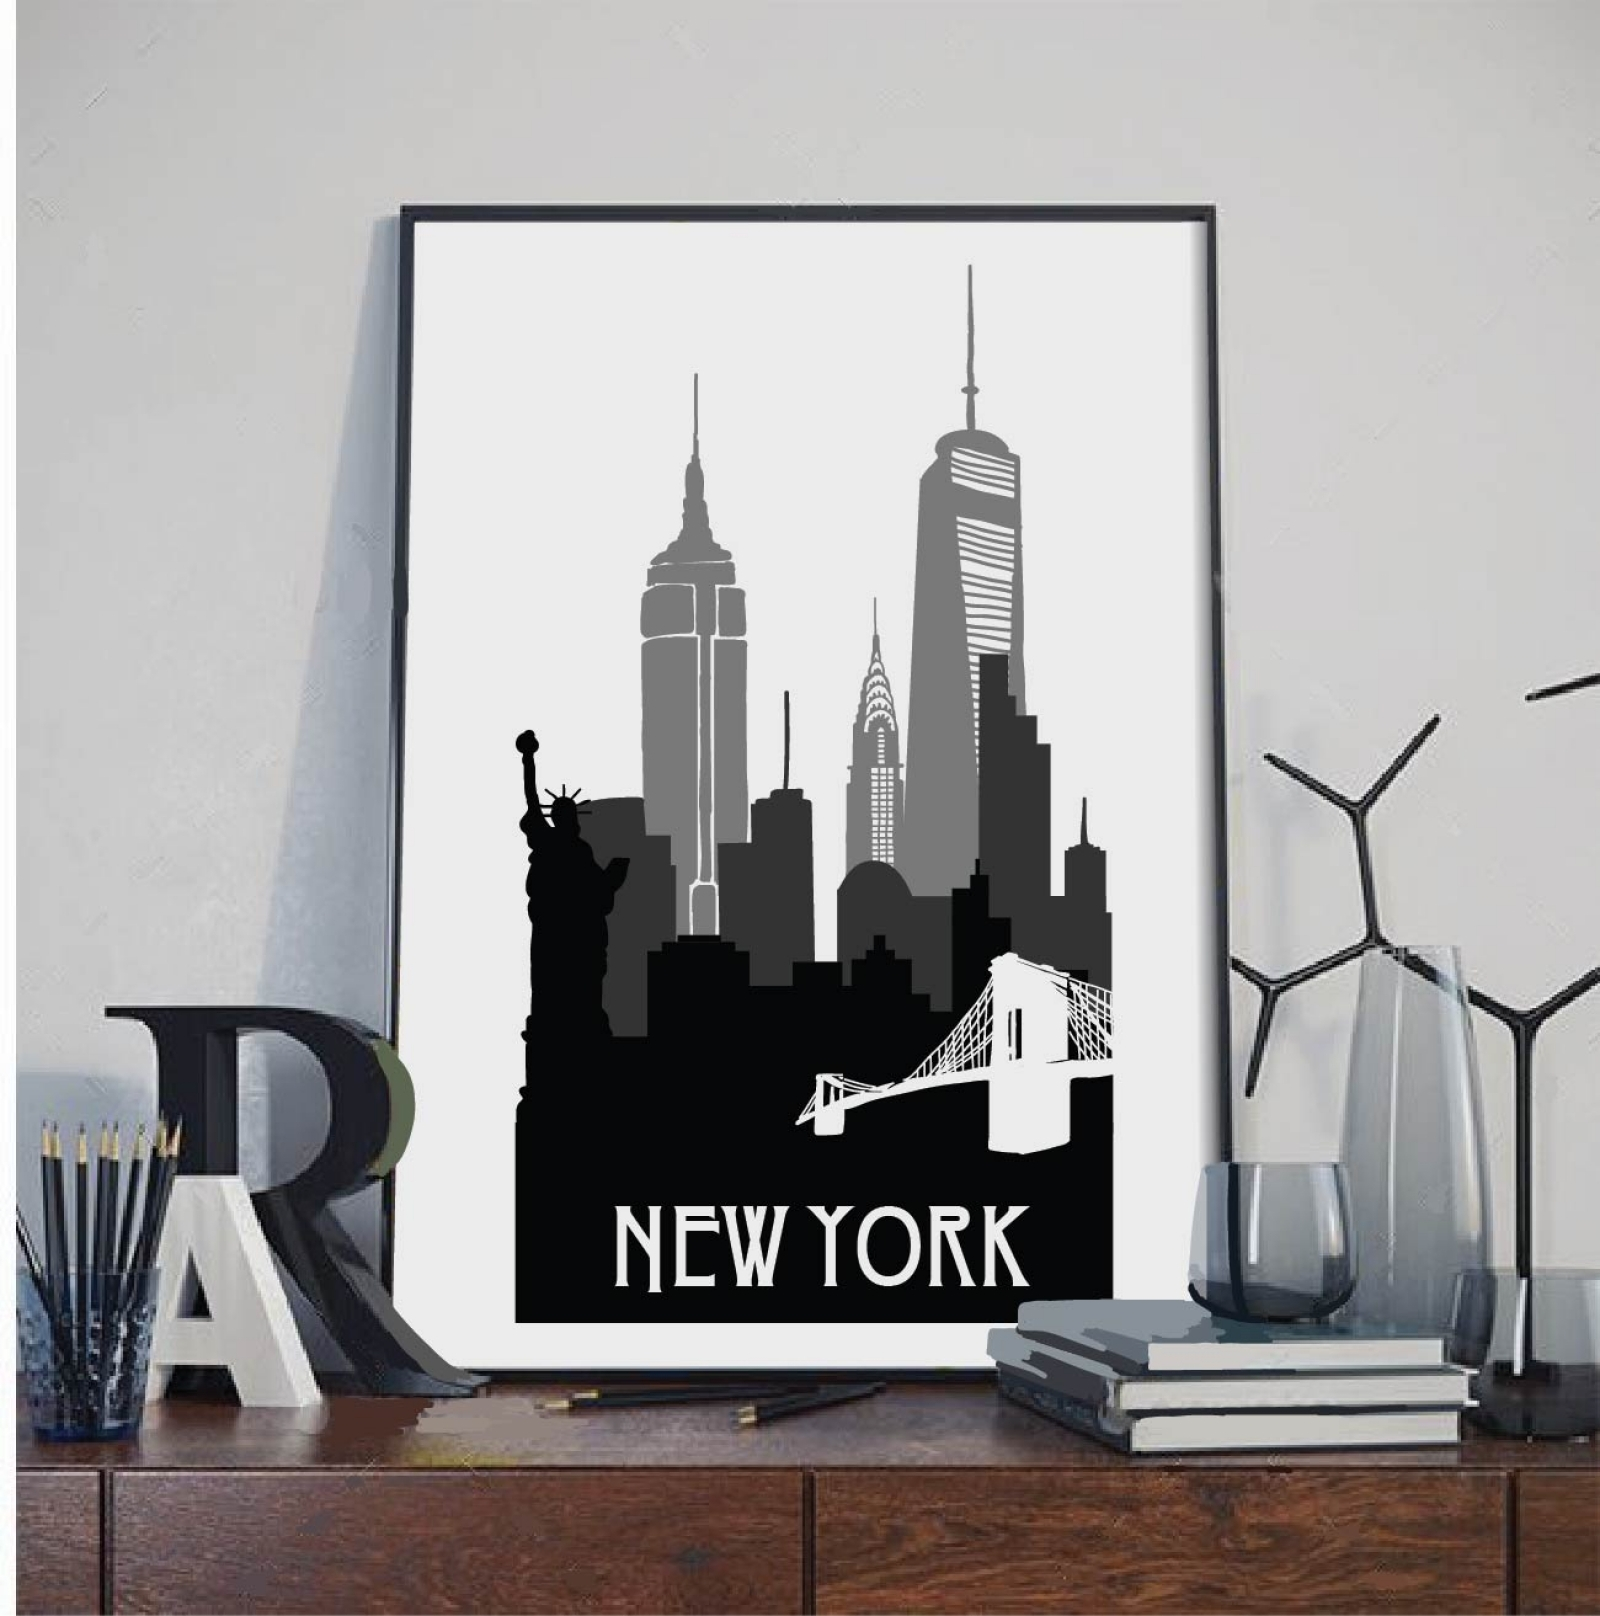 New York Print, New York Silhouette Print, Wall Art,city Poster Pertaining To Most Popular New York Wall Art (View 17 of 20)